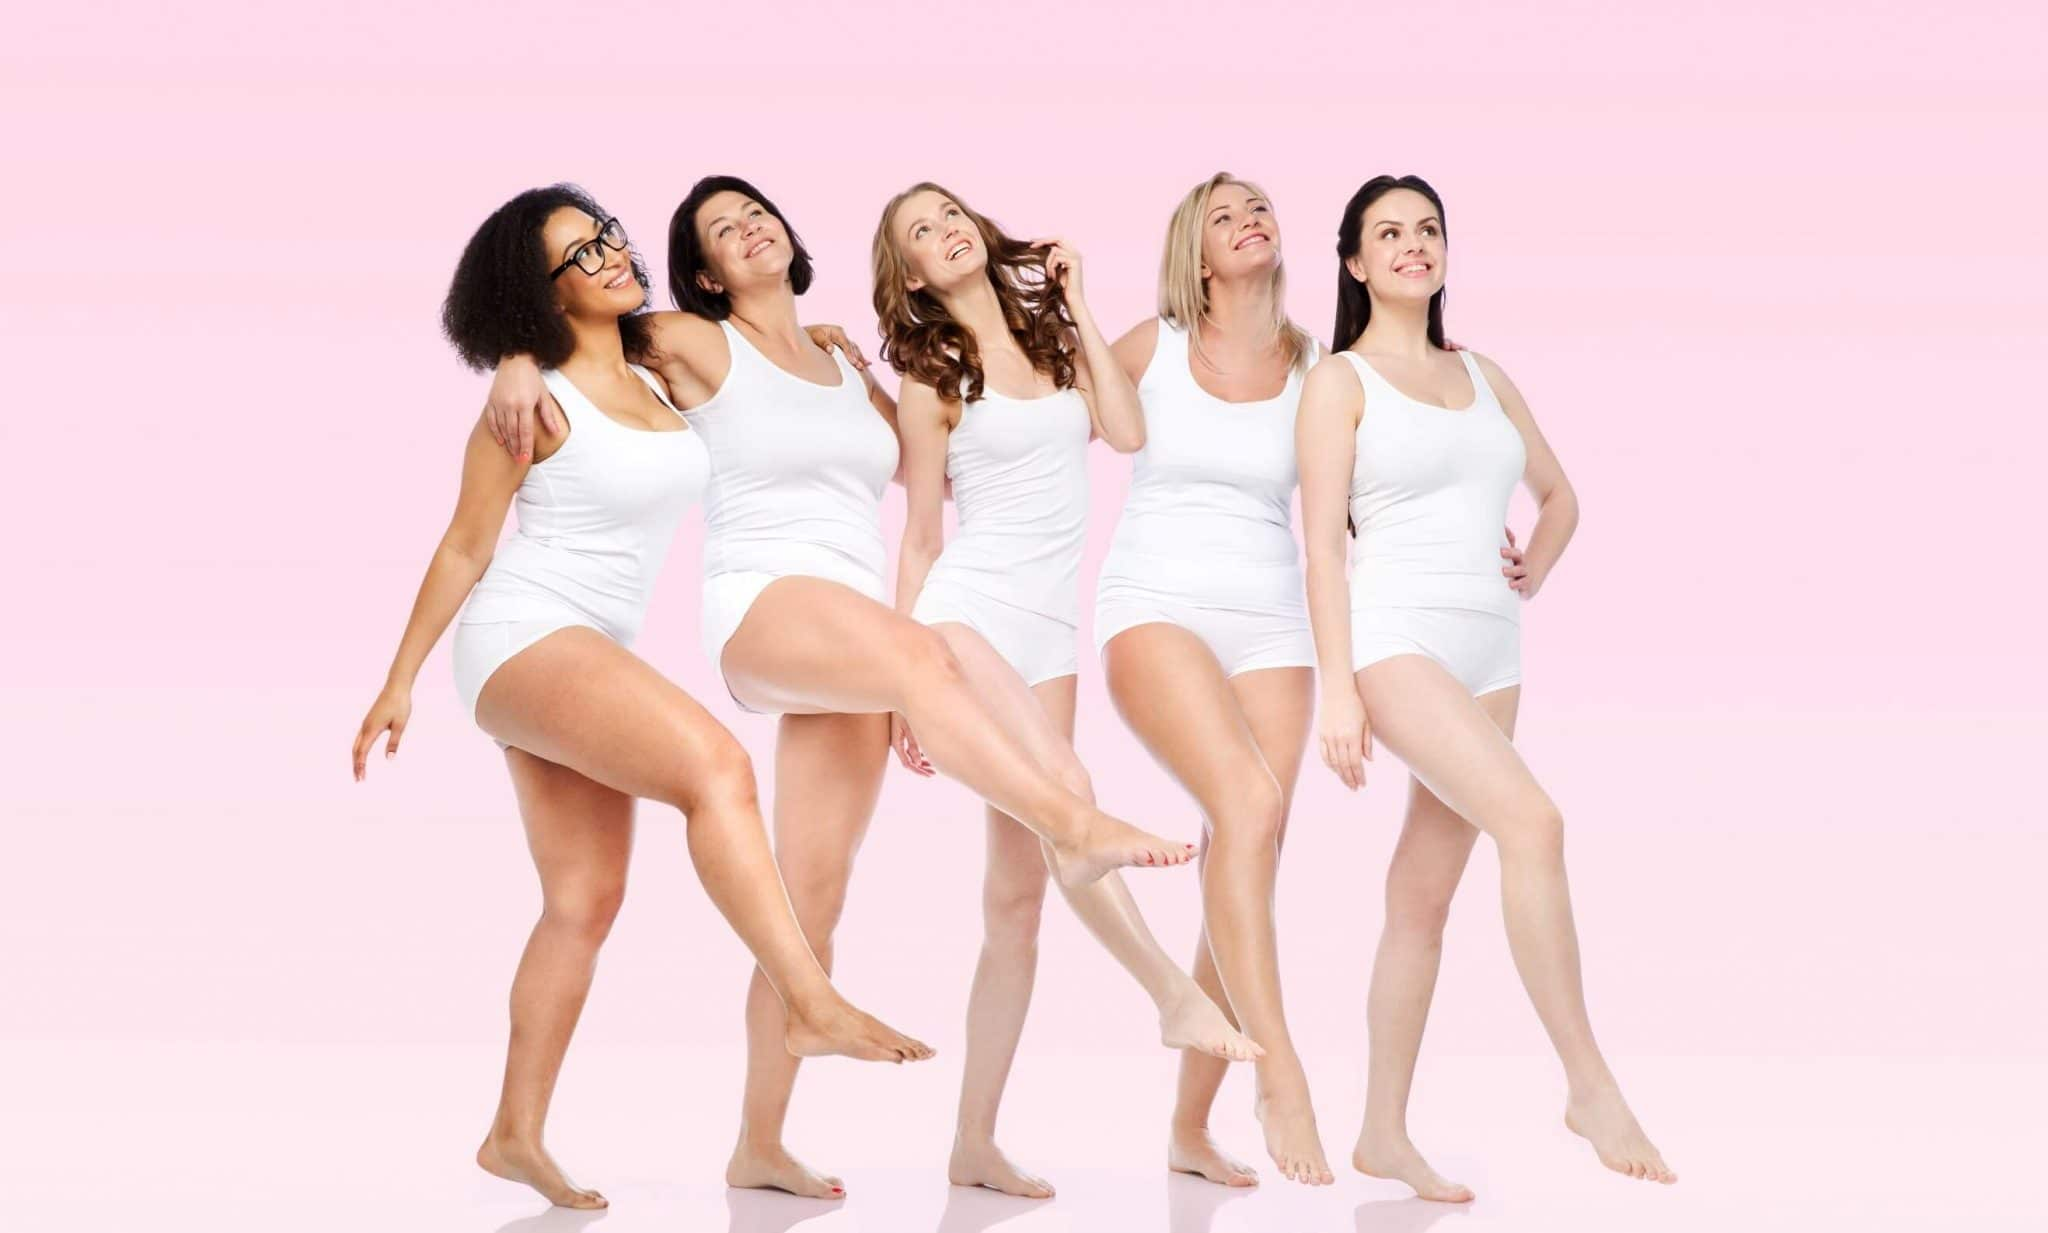 group of different sized women